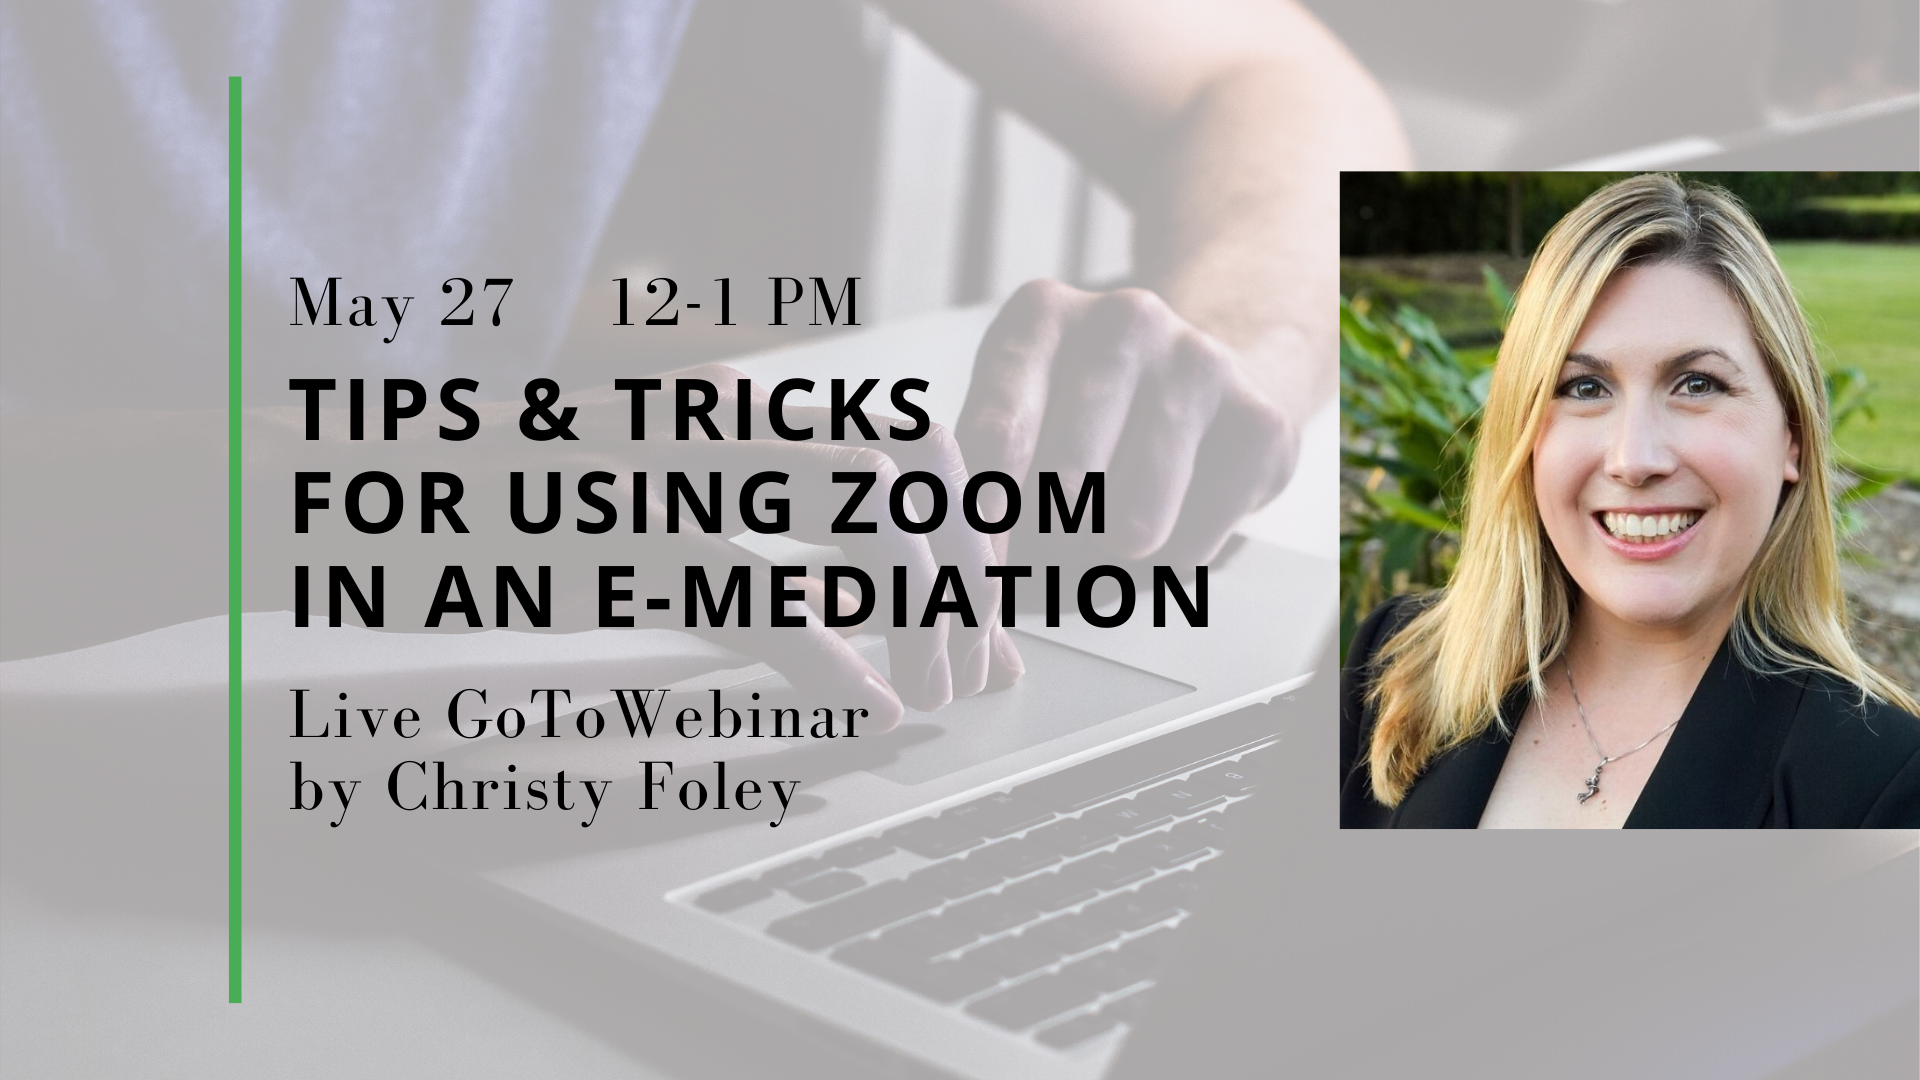 Using Zoom in an Online Mediation